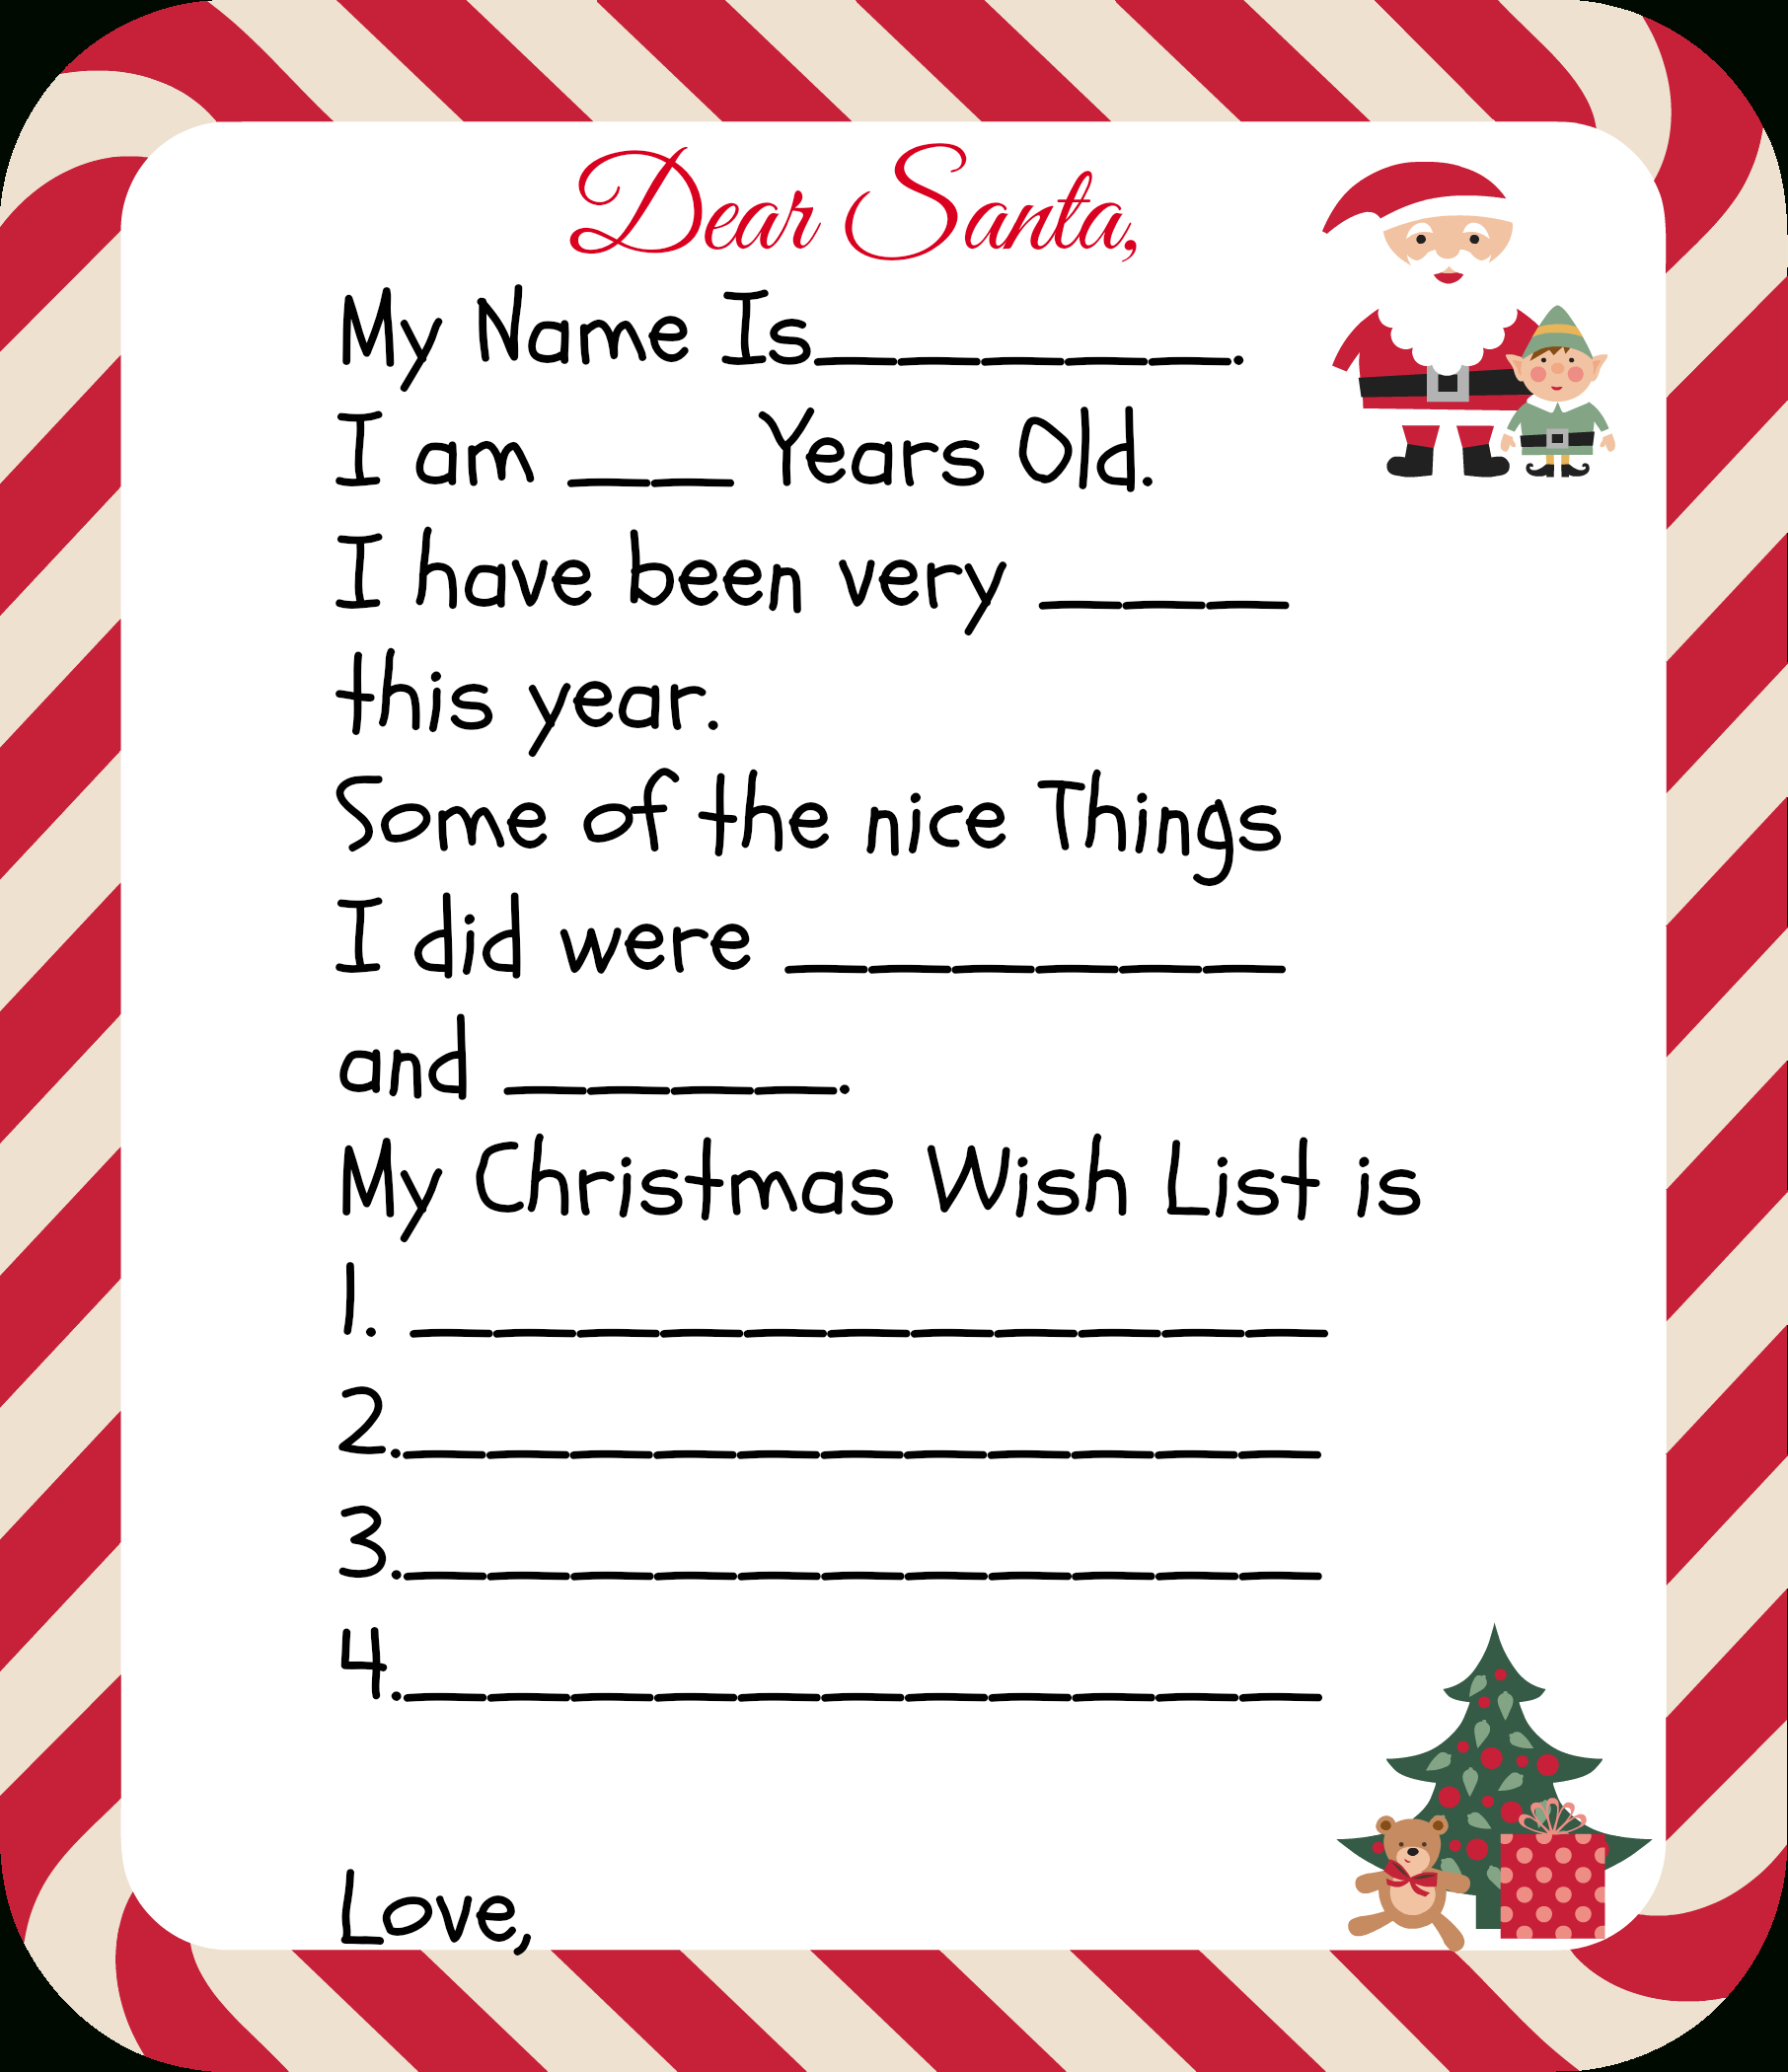 Free Printable Santa Letters For Kids - Free Printable Christmas Letters From Santa